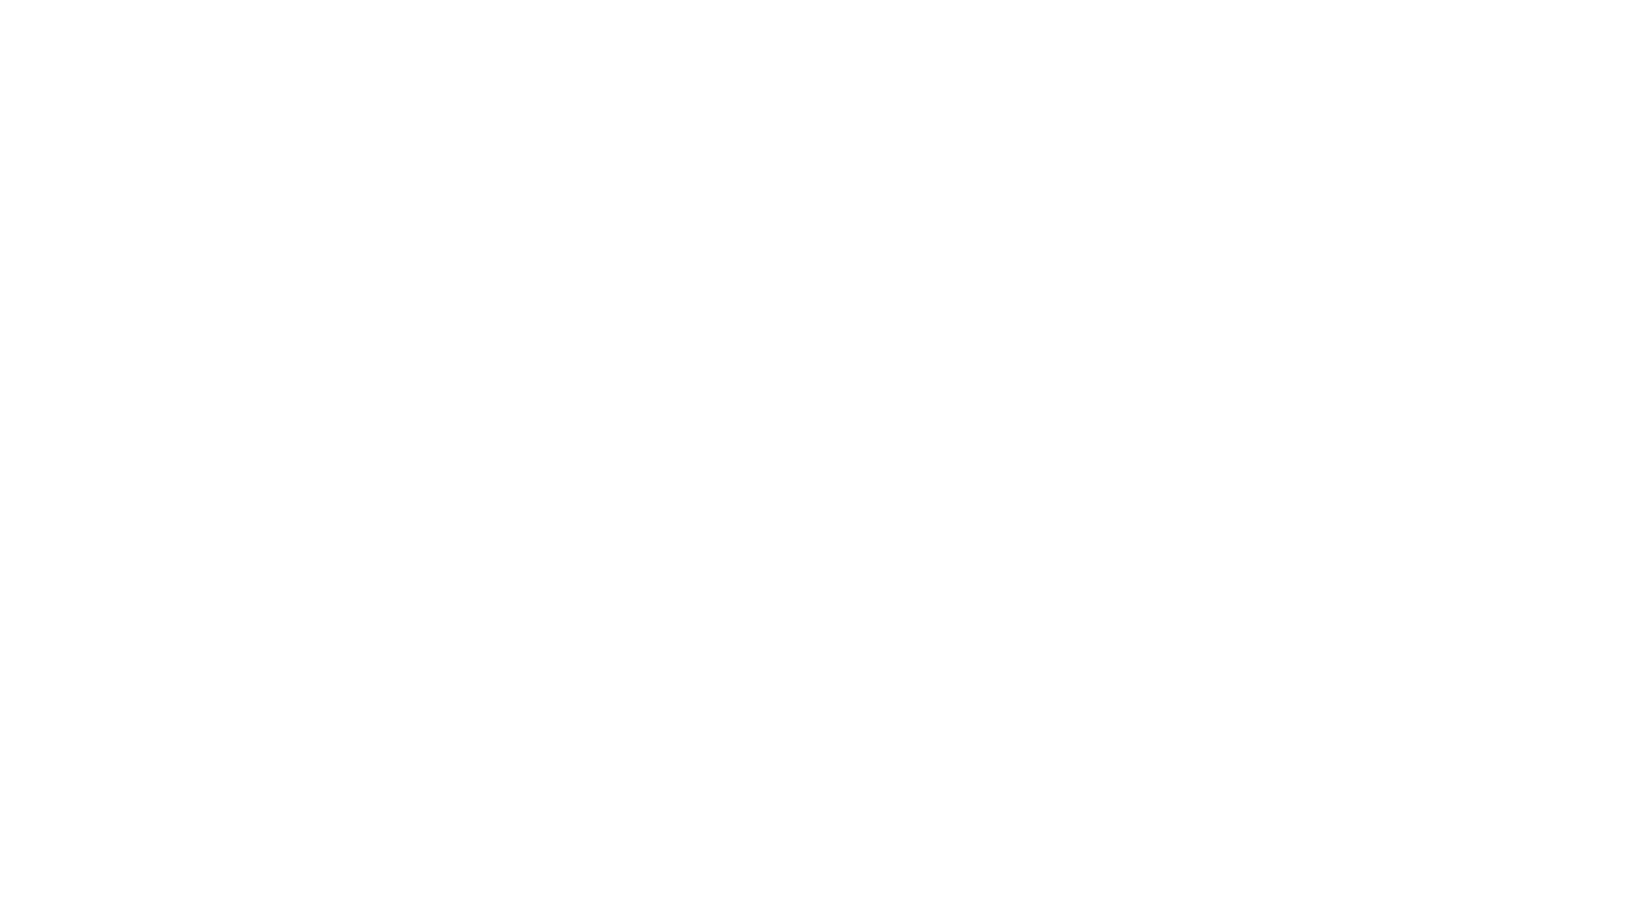 Logo Assiteca white